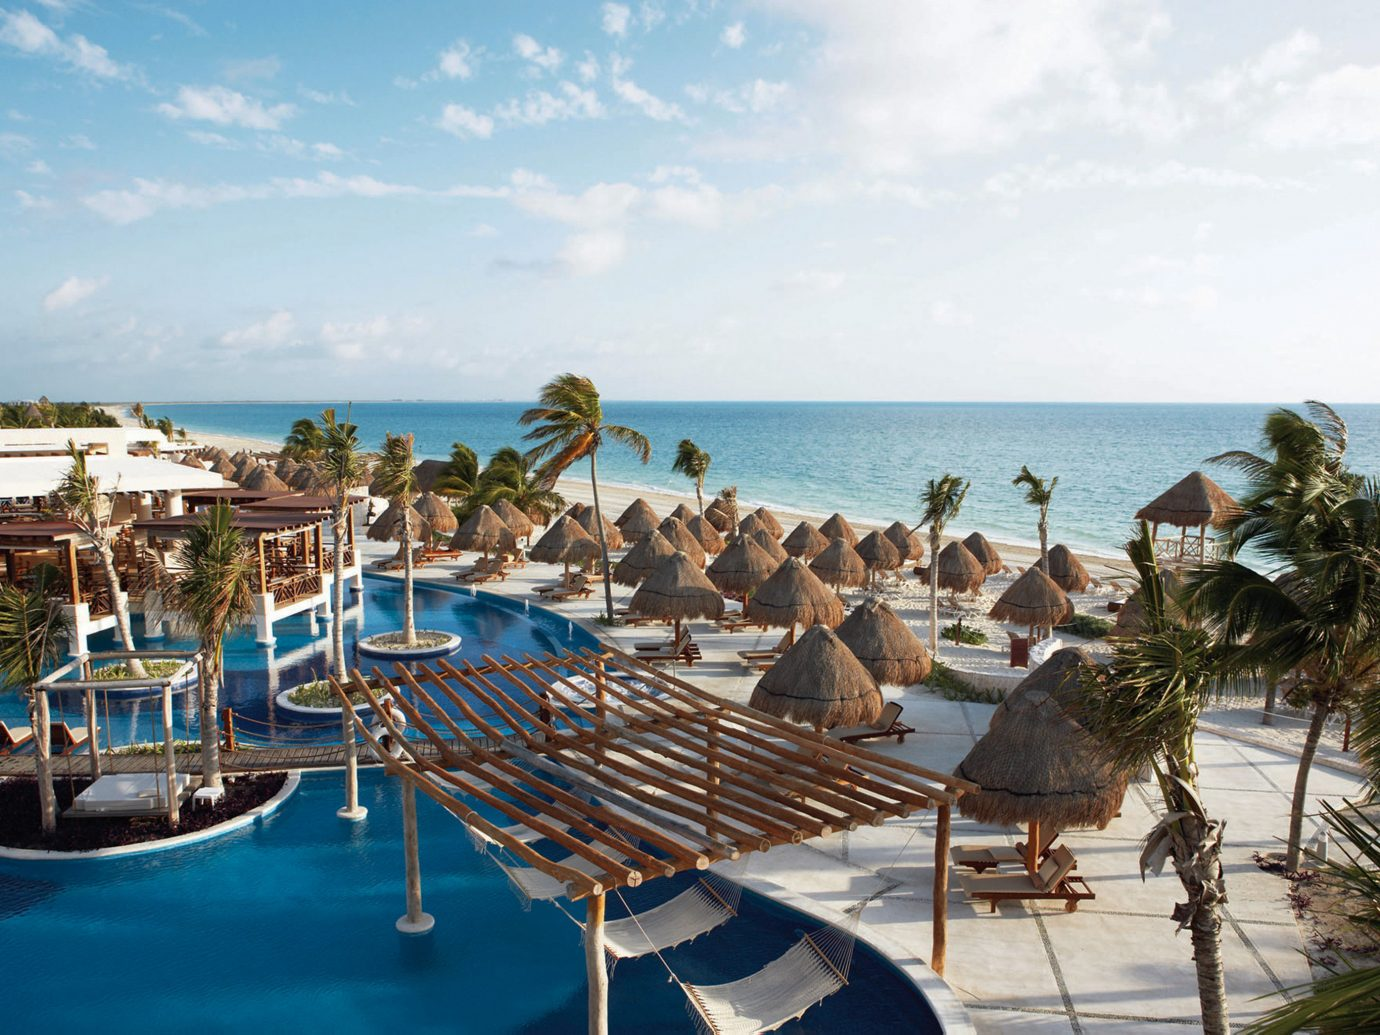 All Inclusive Resort The Best Adults Only All Inclusive Resorts In The World With